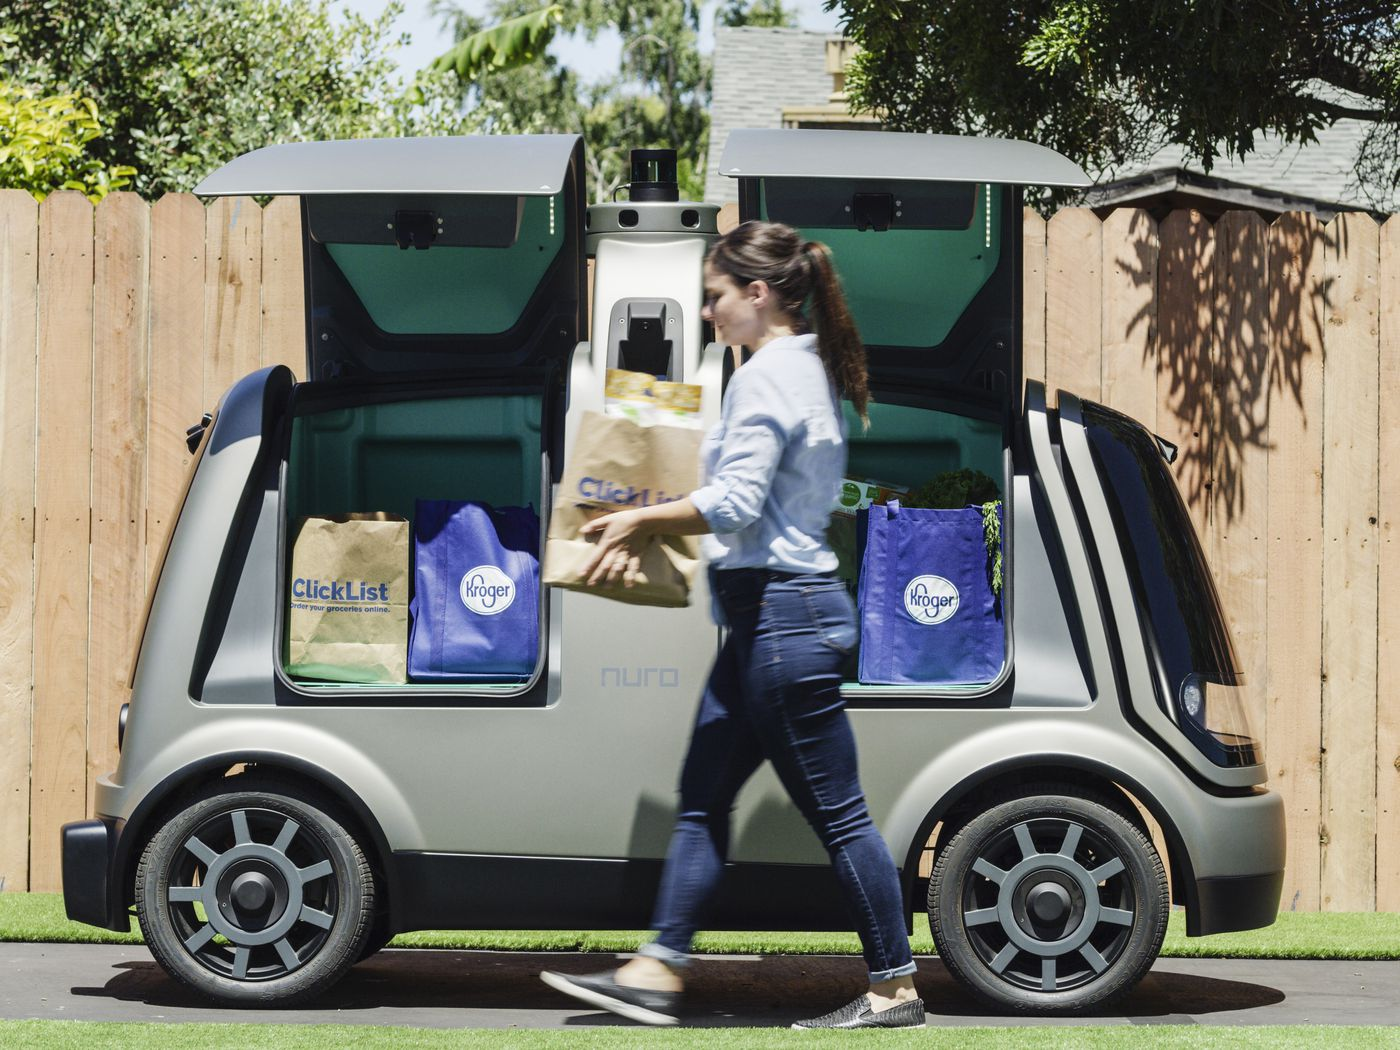 Nuro can now charge for robot deliveries in California - The Verge